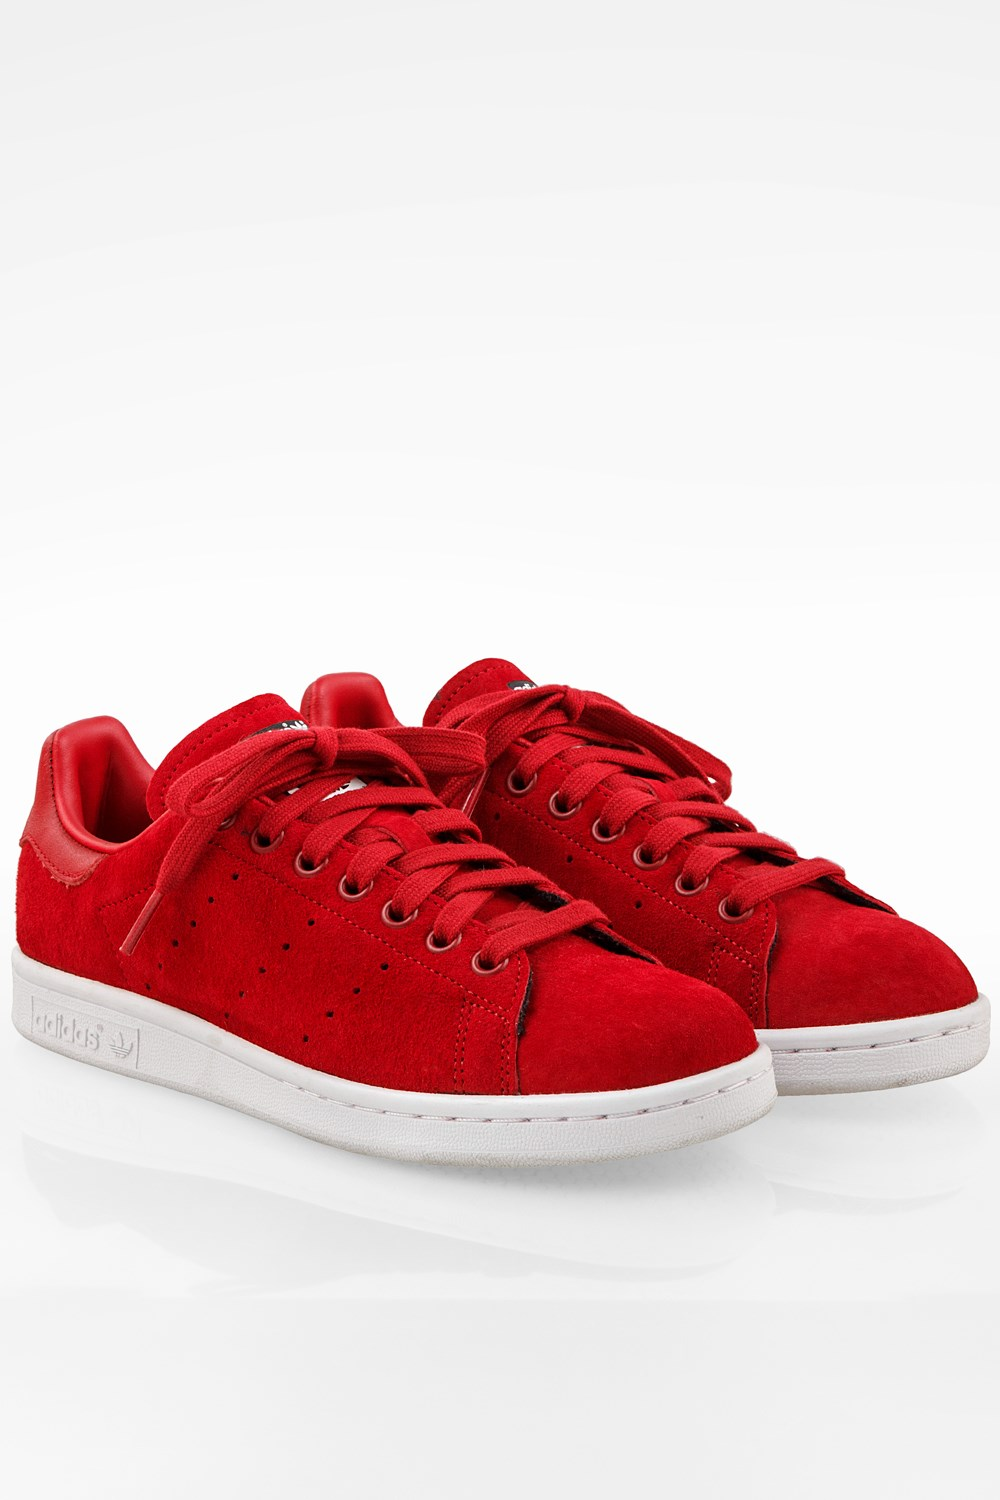 sneakers for cheap 95a51 0d180 Starbags Products, Shoes, Trainers, Power Red Suede Stan Smith W / Size: 38  - Fit: True to size, Starbags.gr